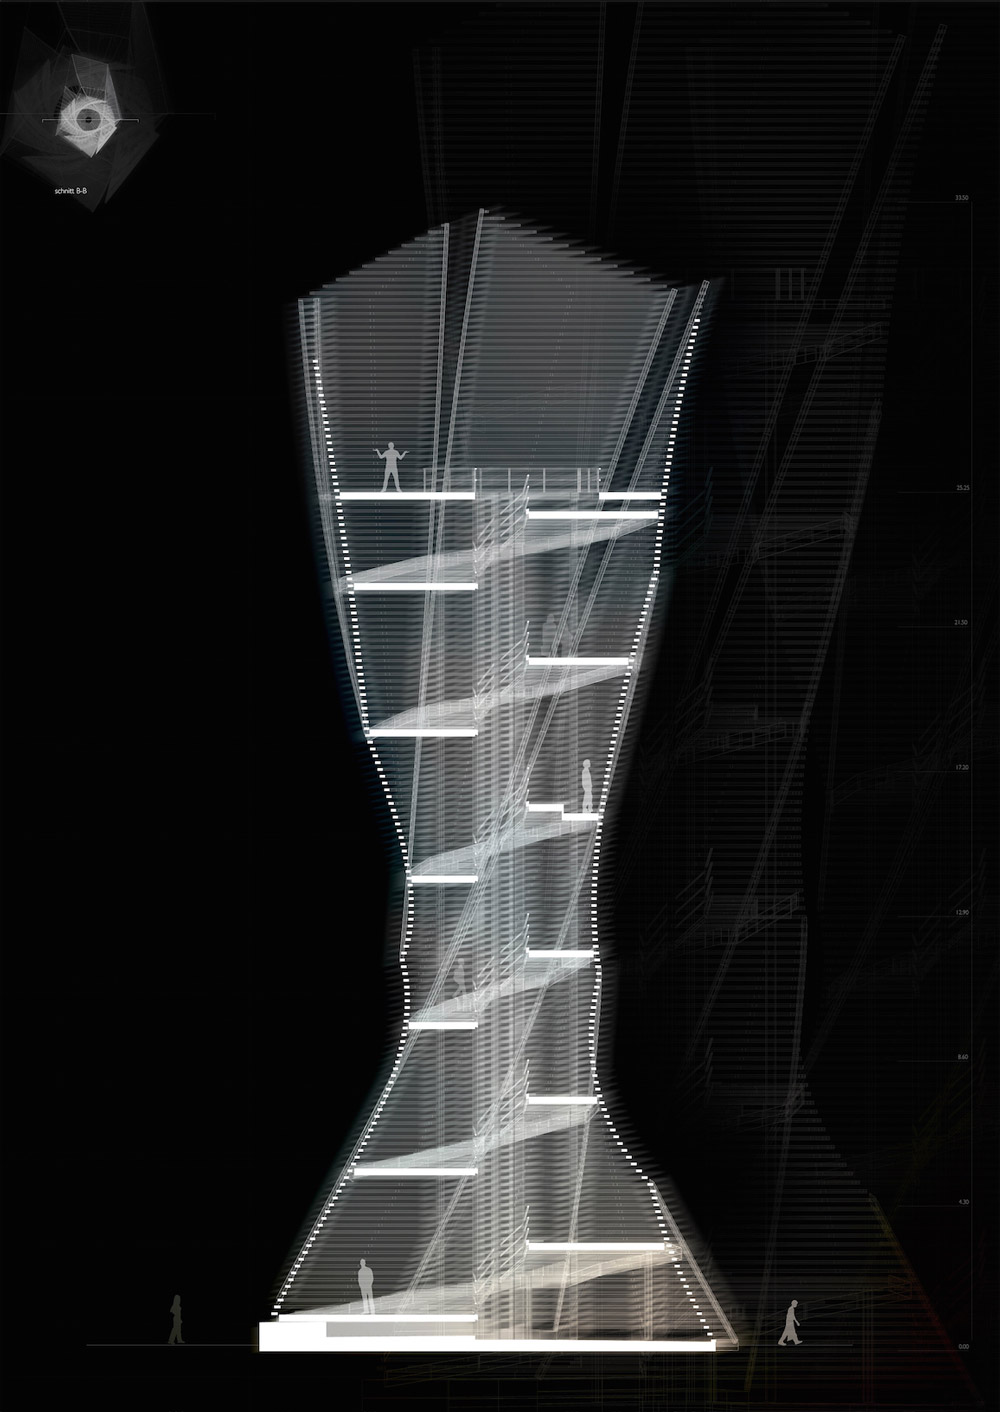 Twisting observation tower could be built in a northern for Observation tower plans